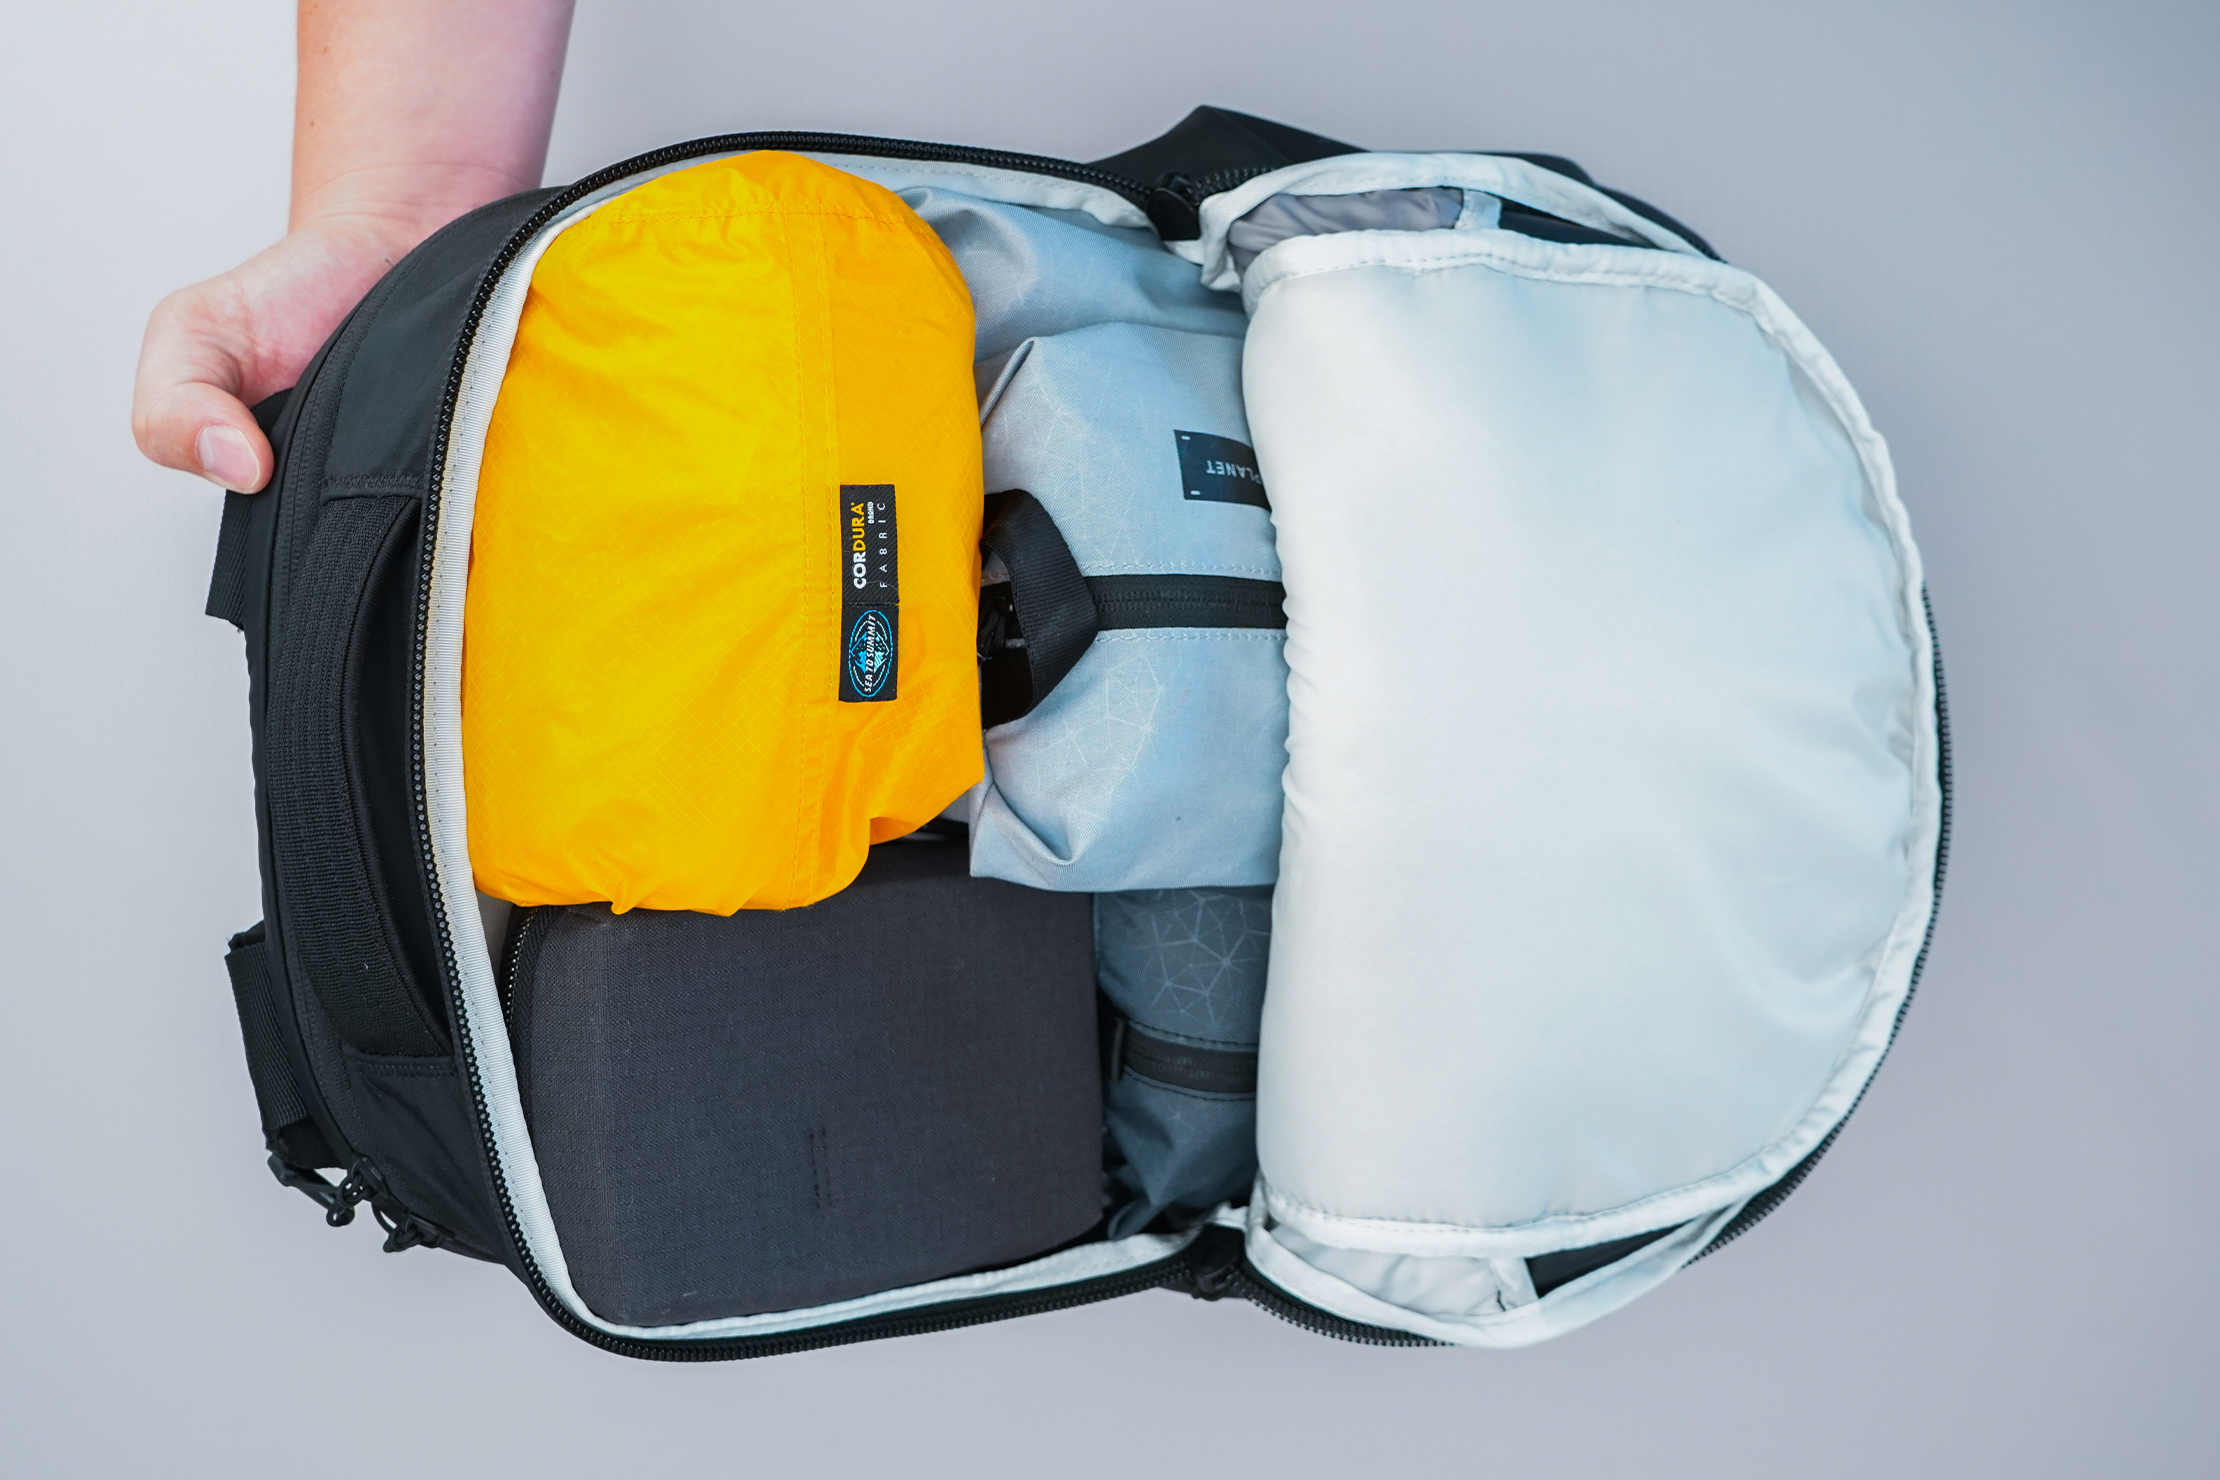 The North Face Surge Backpack main compartment